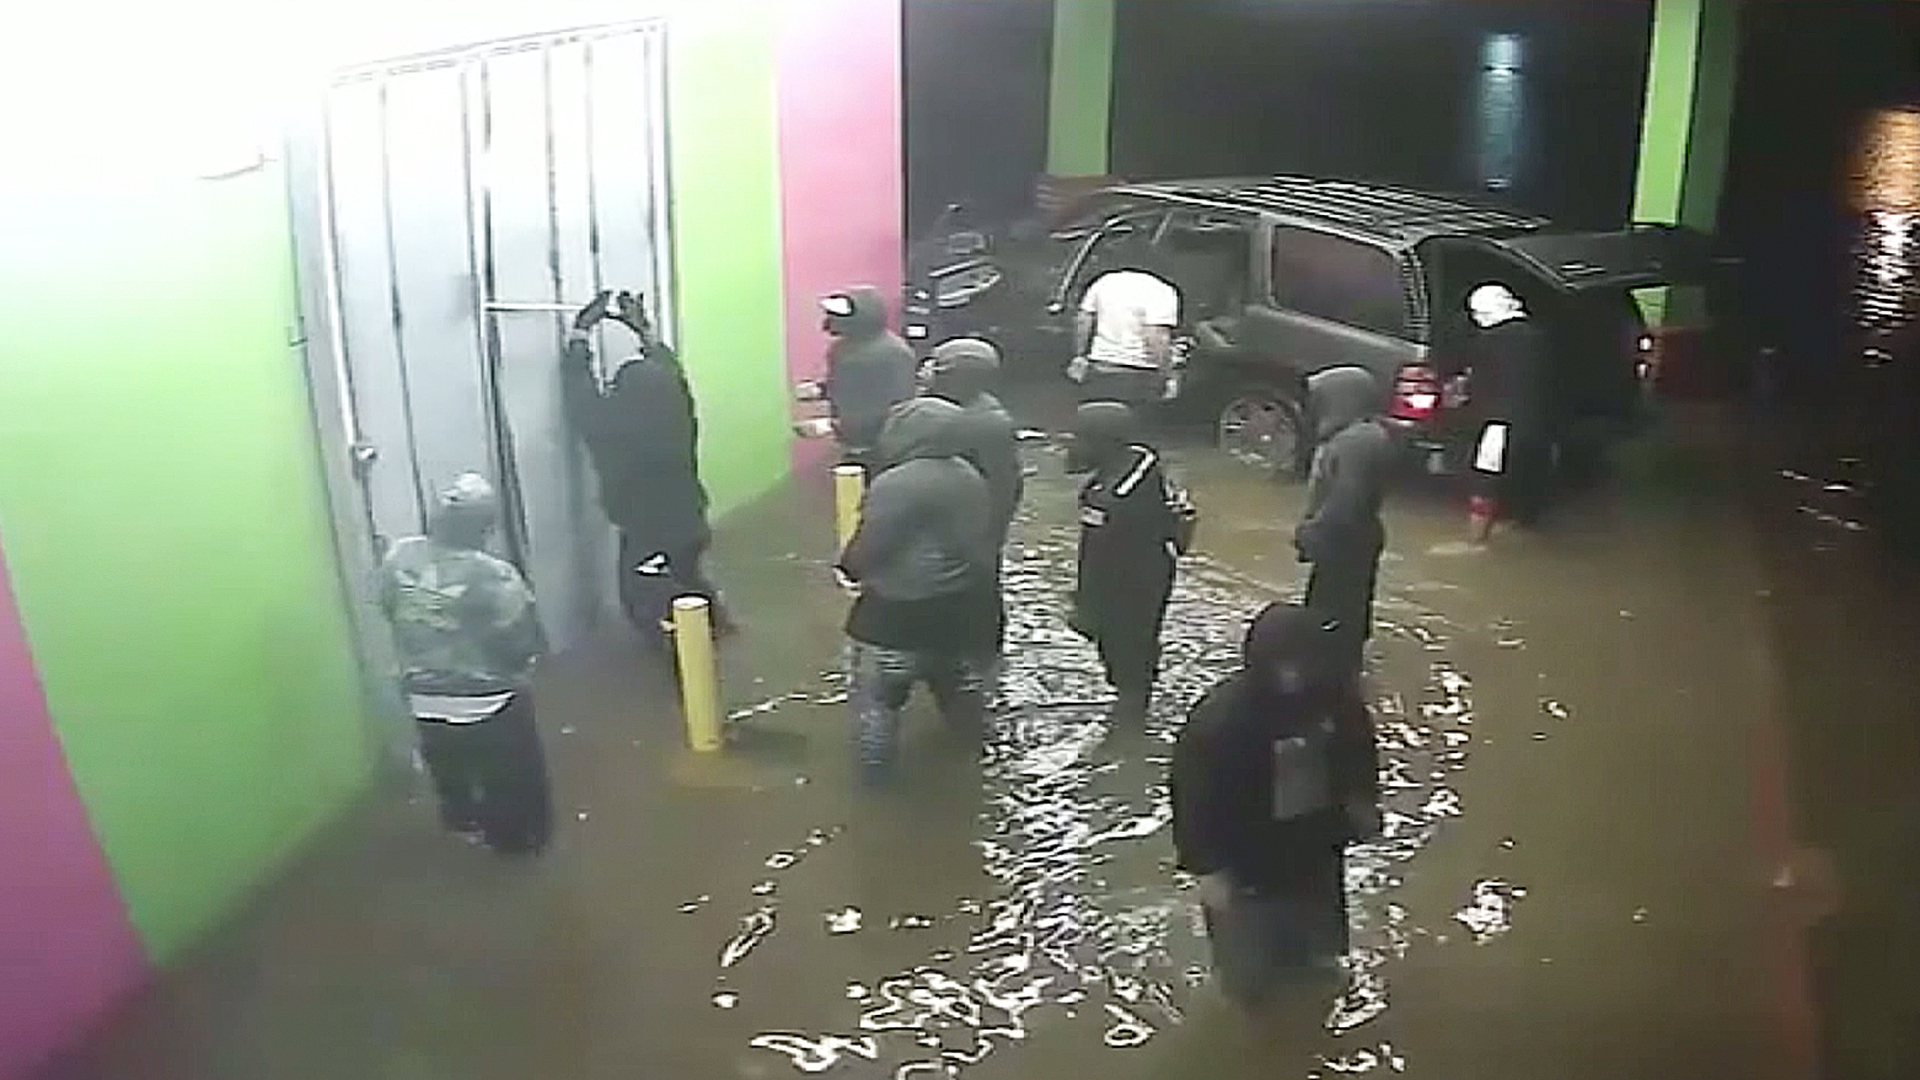 A group of looters can be seen outside a Houston store during Hurricane Harvey. (Credit: Houston Police Department)